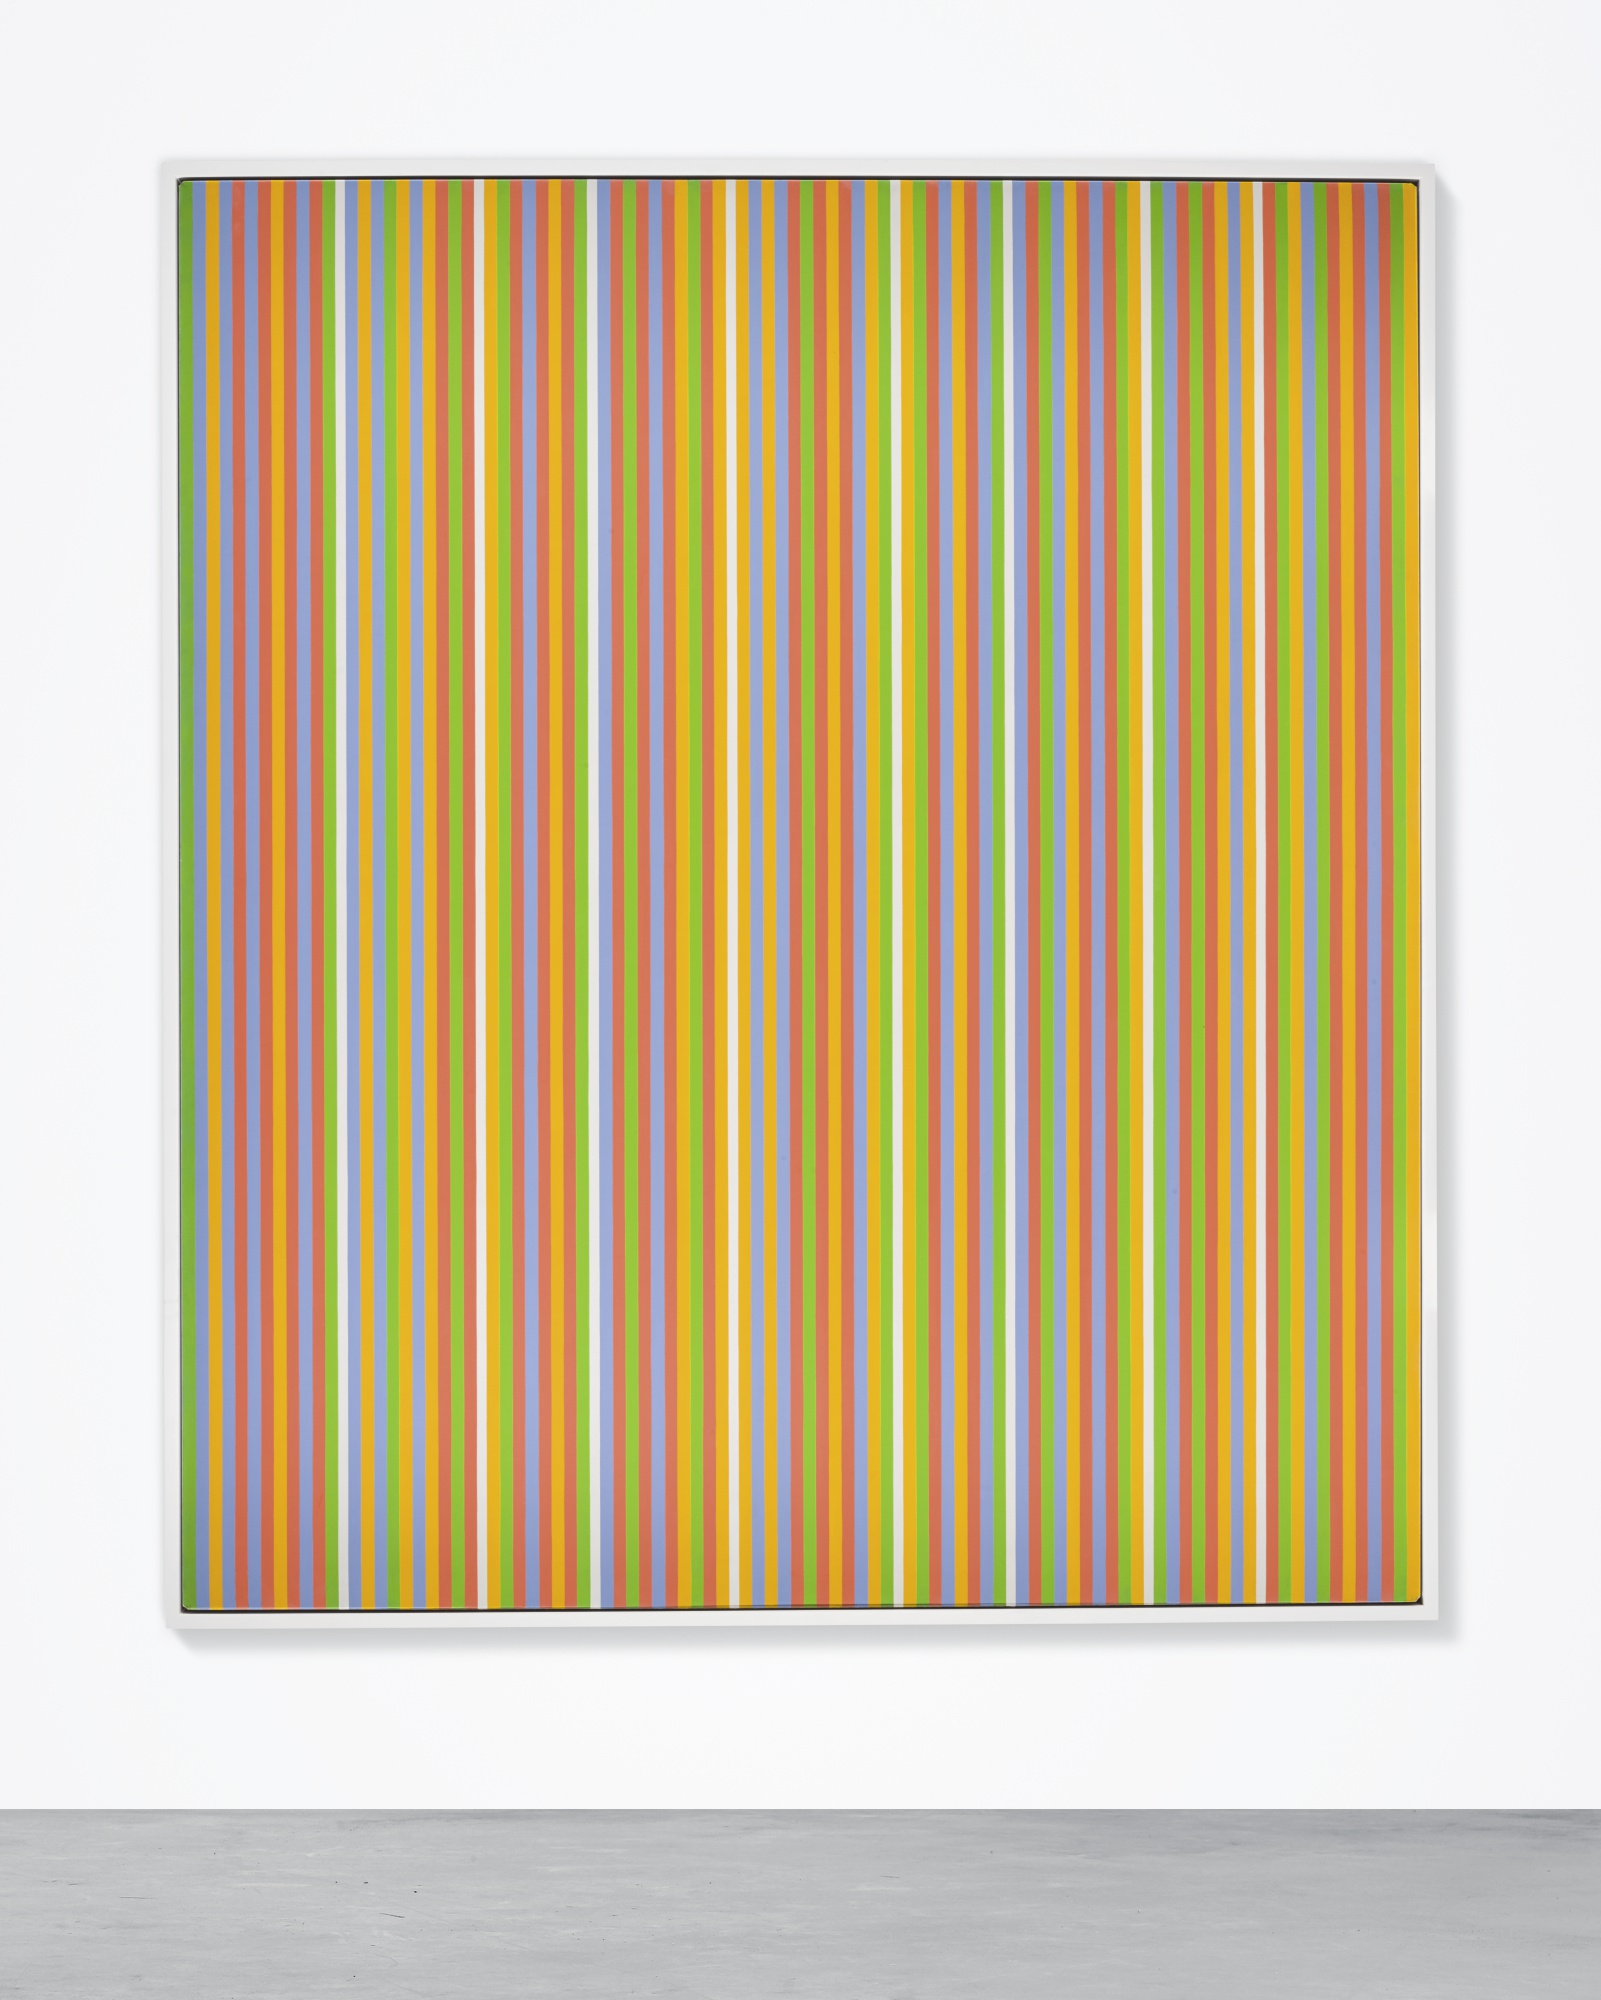 Bridget Riley,  Midi,  1983. Courtesy of Sotheby's.